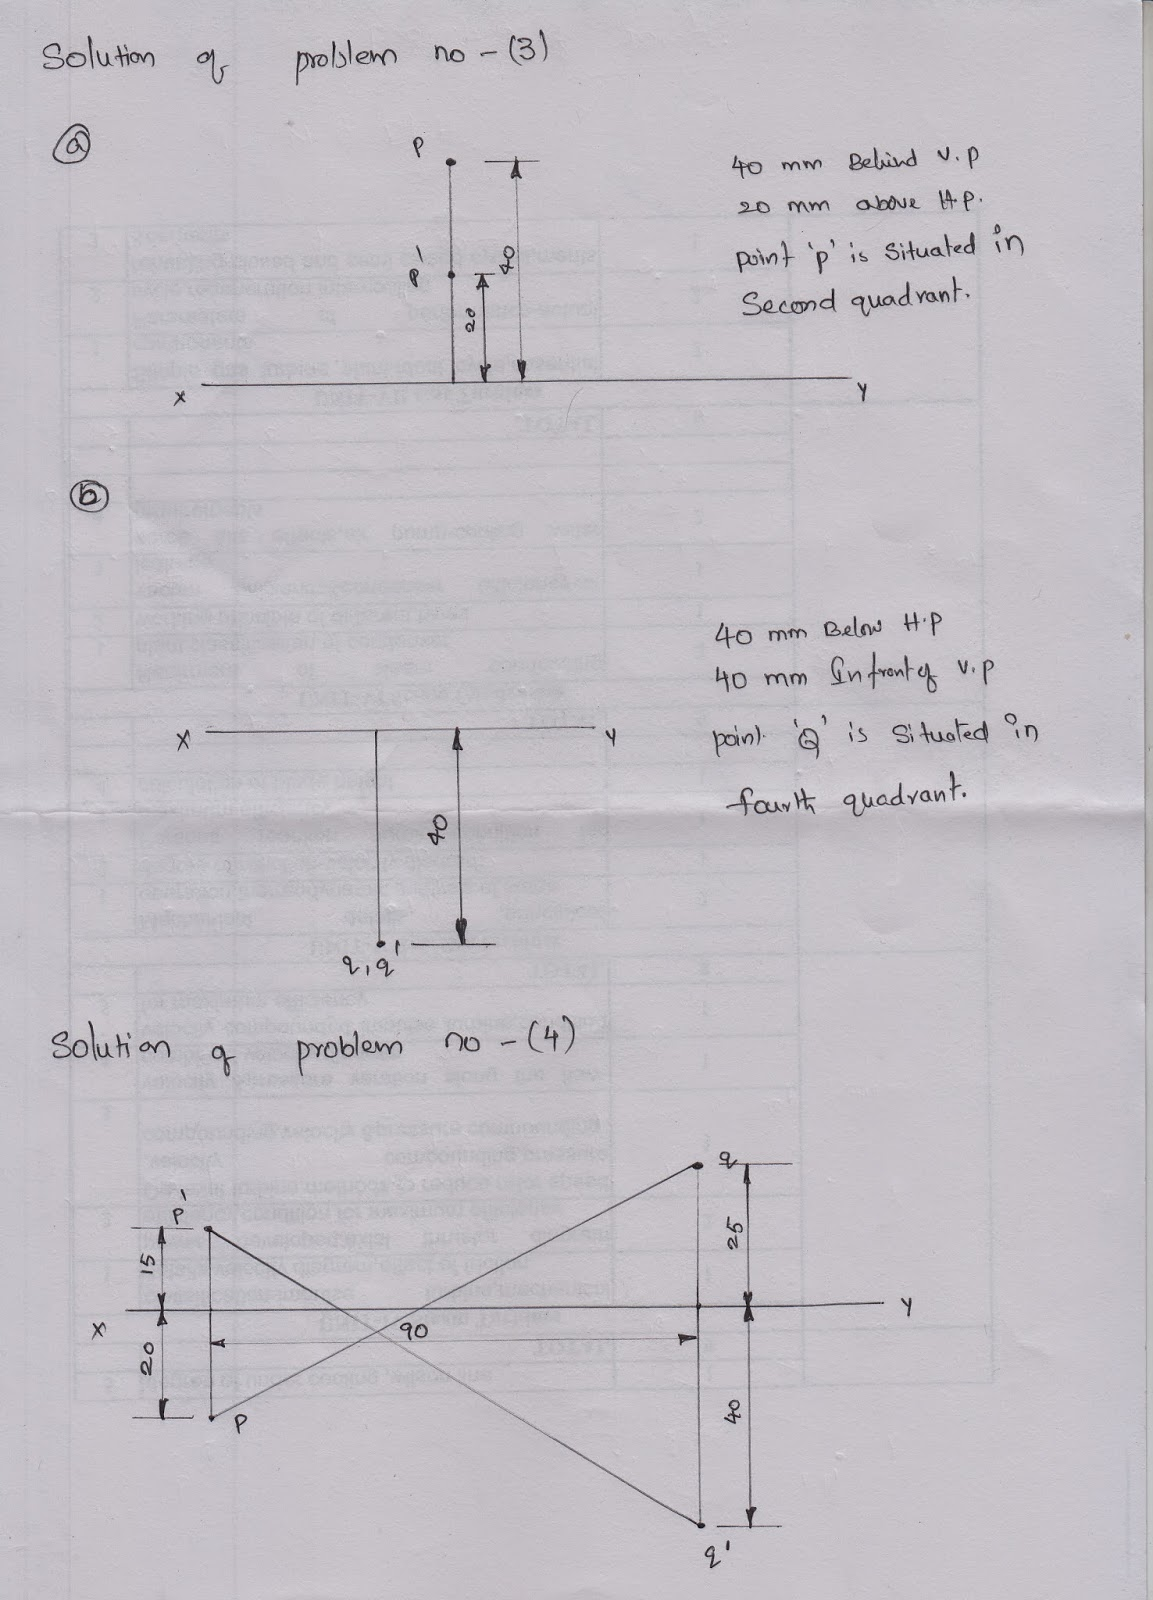 mechanical ed projection of points exercise problems in nd bhatt rh vara343 blogspot com Engineering Drawings Examples Engineering Drawing Scale